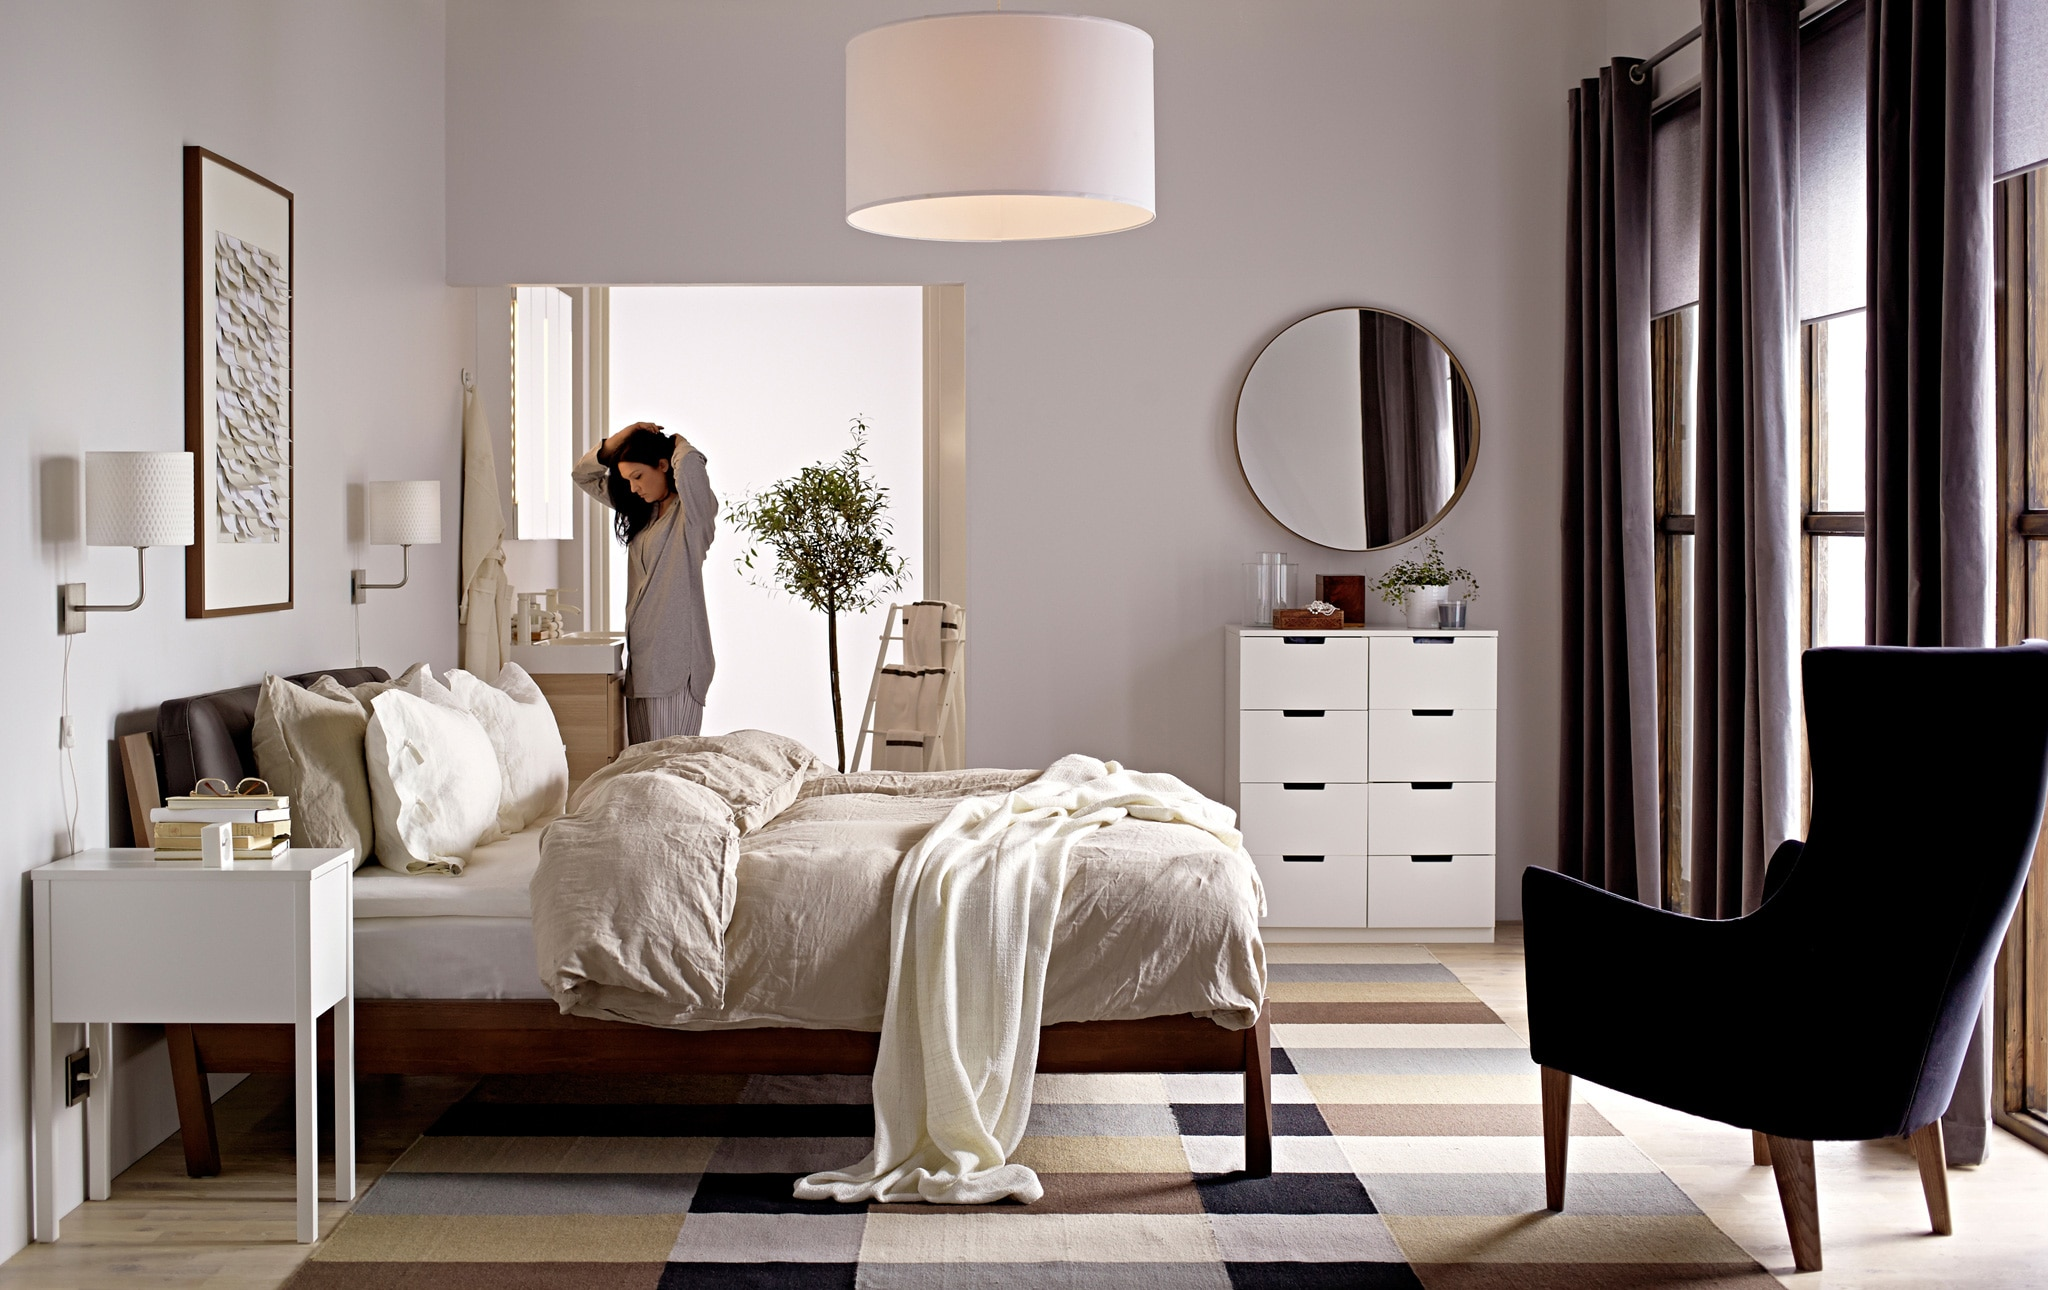 Bedroom Ideas - IKEA Qatar